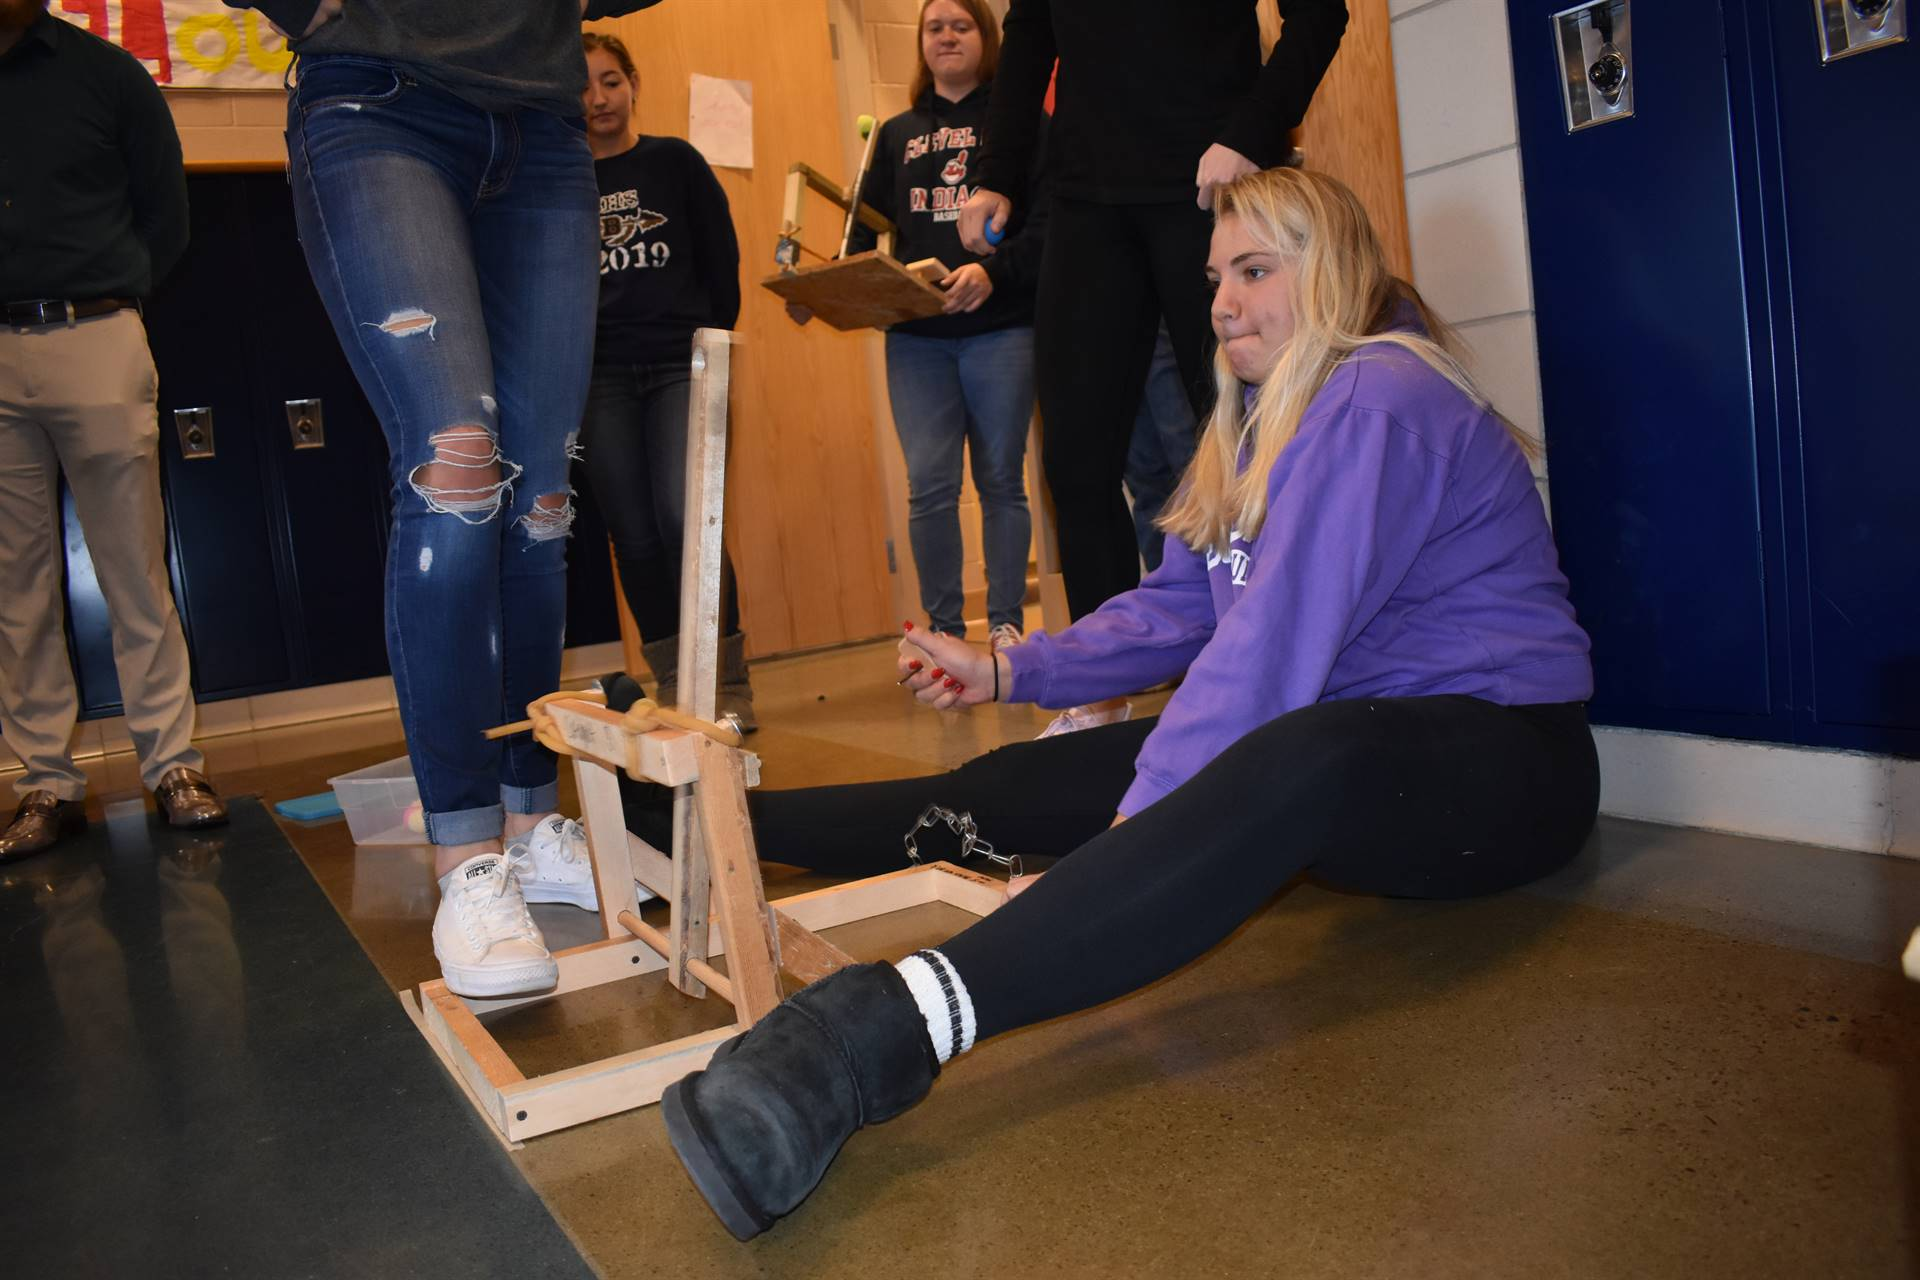 Students use their catapults in physics class.